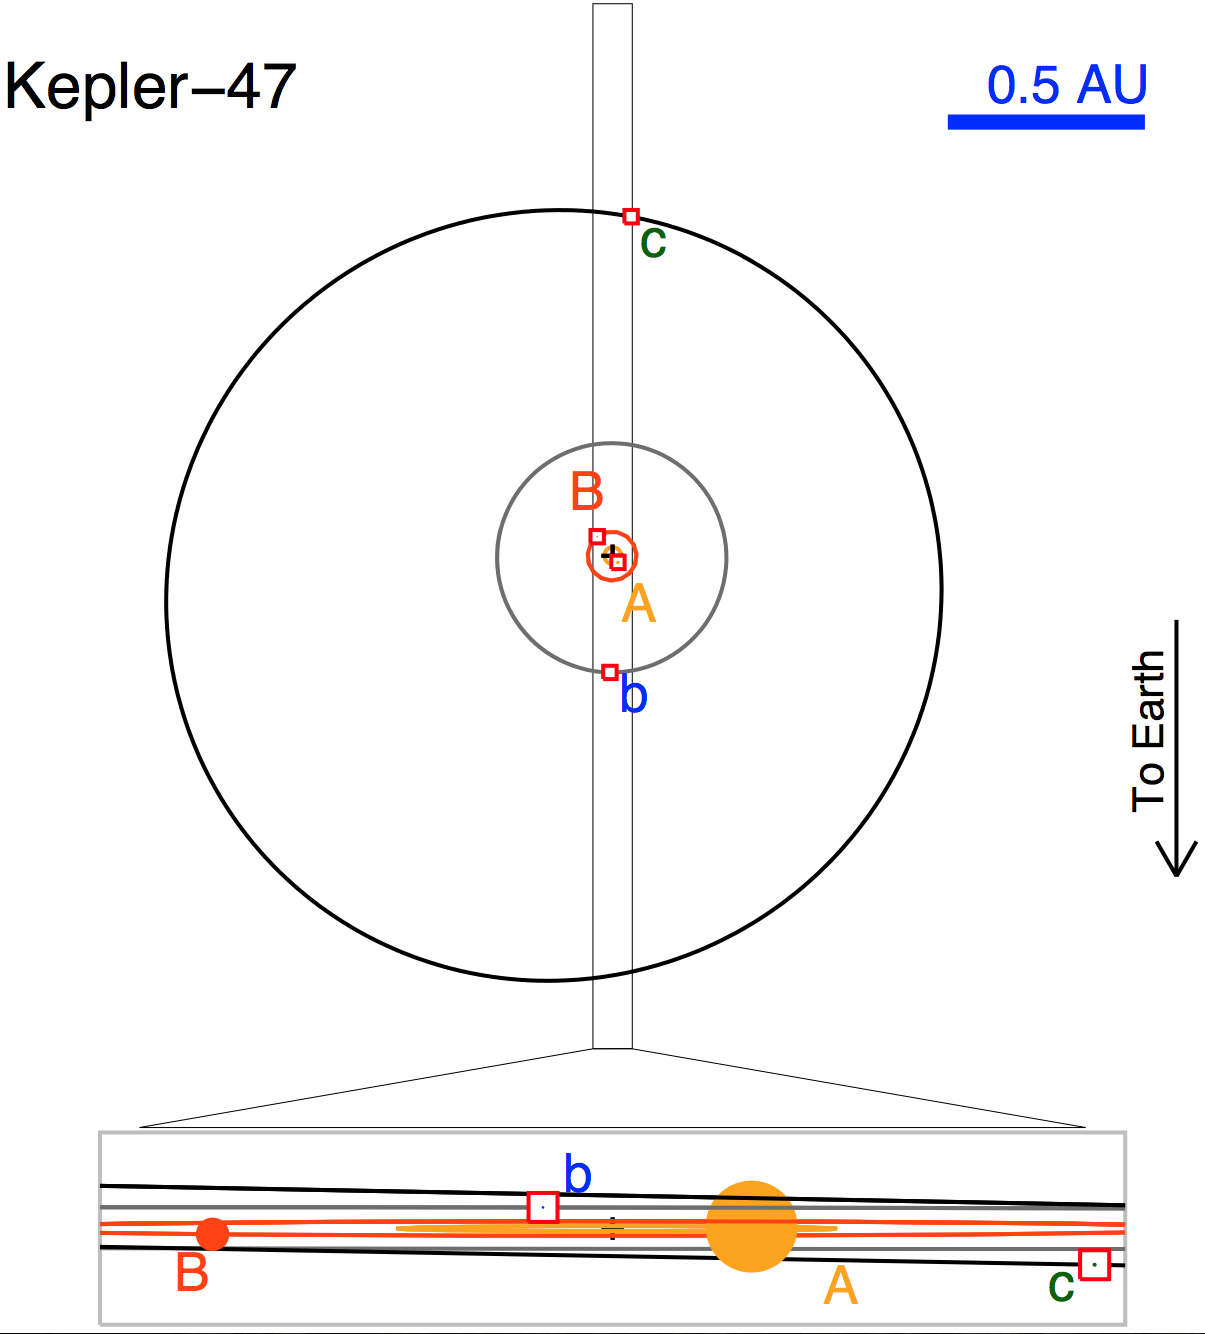 Rappresentazione schematica del sistema Kepler-47 visto dall'alto e di lato. I quadratini rossi evidenziano la posizione dei due pianeti, la croce il centro di massa del sistema. Come si vede dalla vista laterale, entrambi i pianeti transitano davanti alla stella primaria (A), ma non davanti alla secondaria (B). Cortesia: Jerome A. Orosz, William F. Welsh <i>et al.</i> (2012)